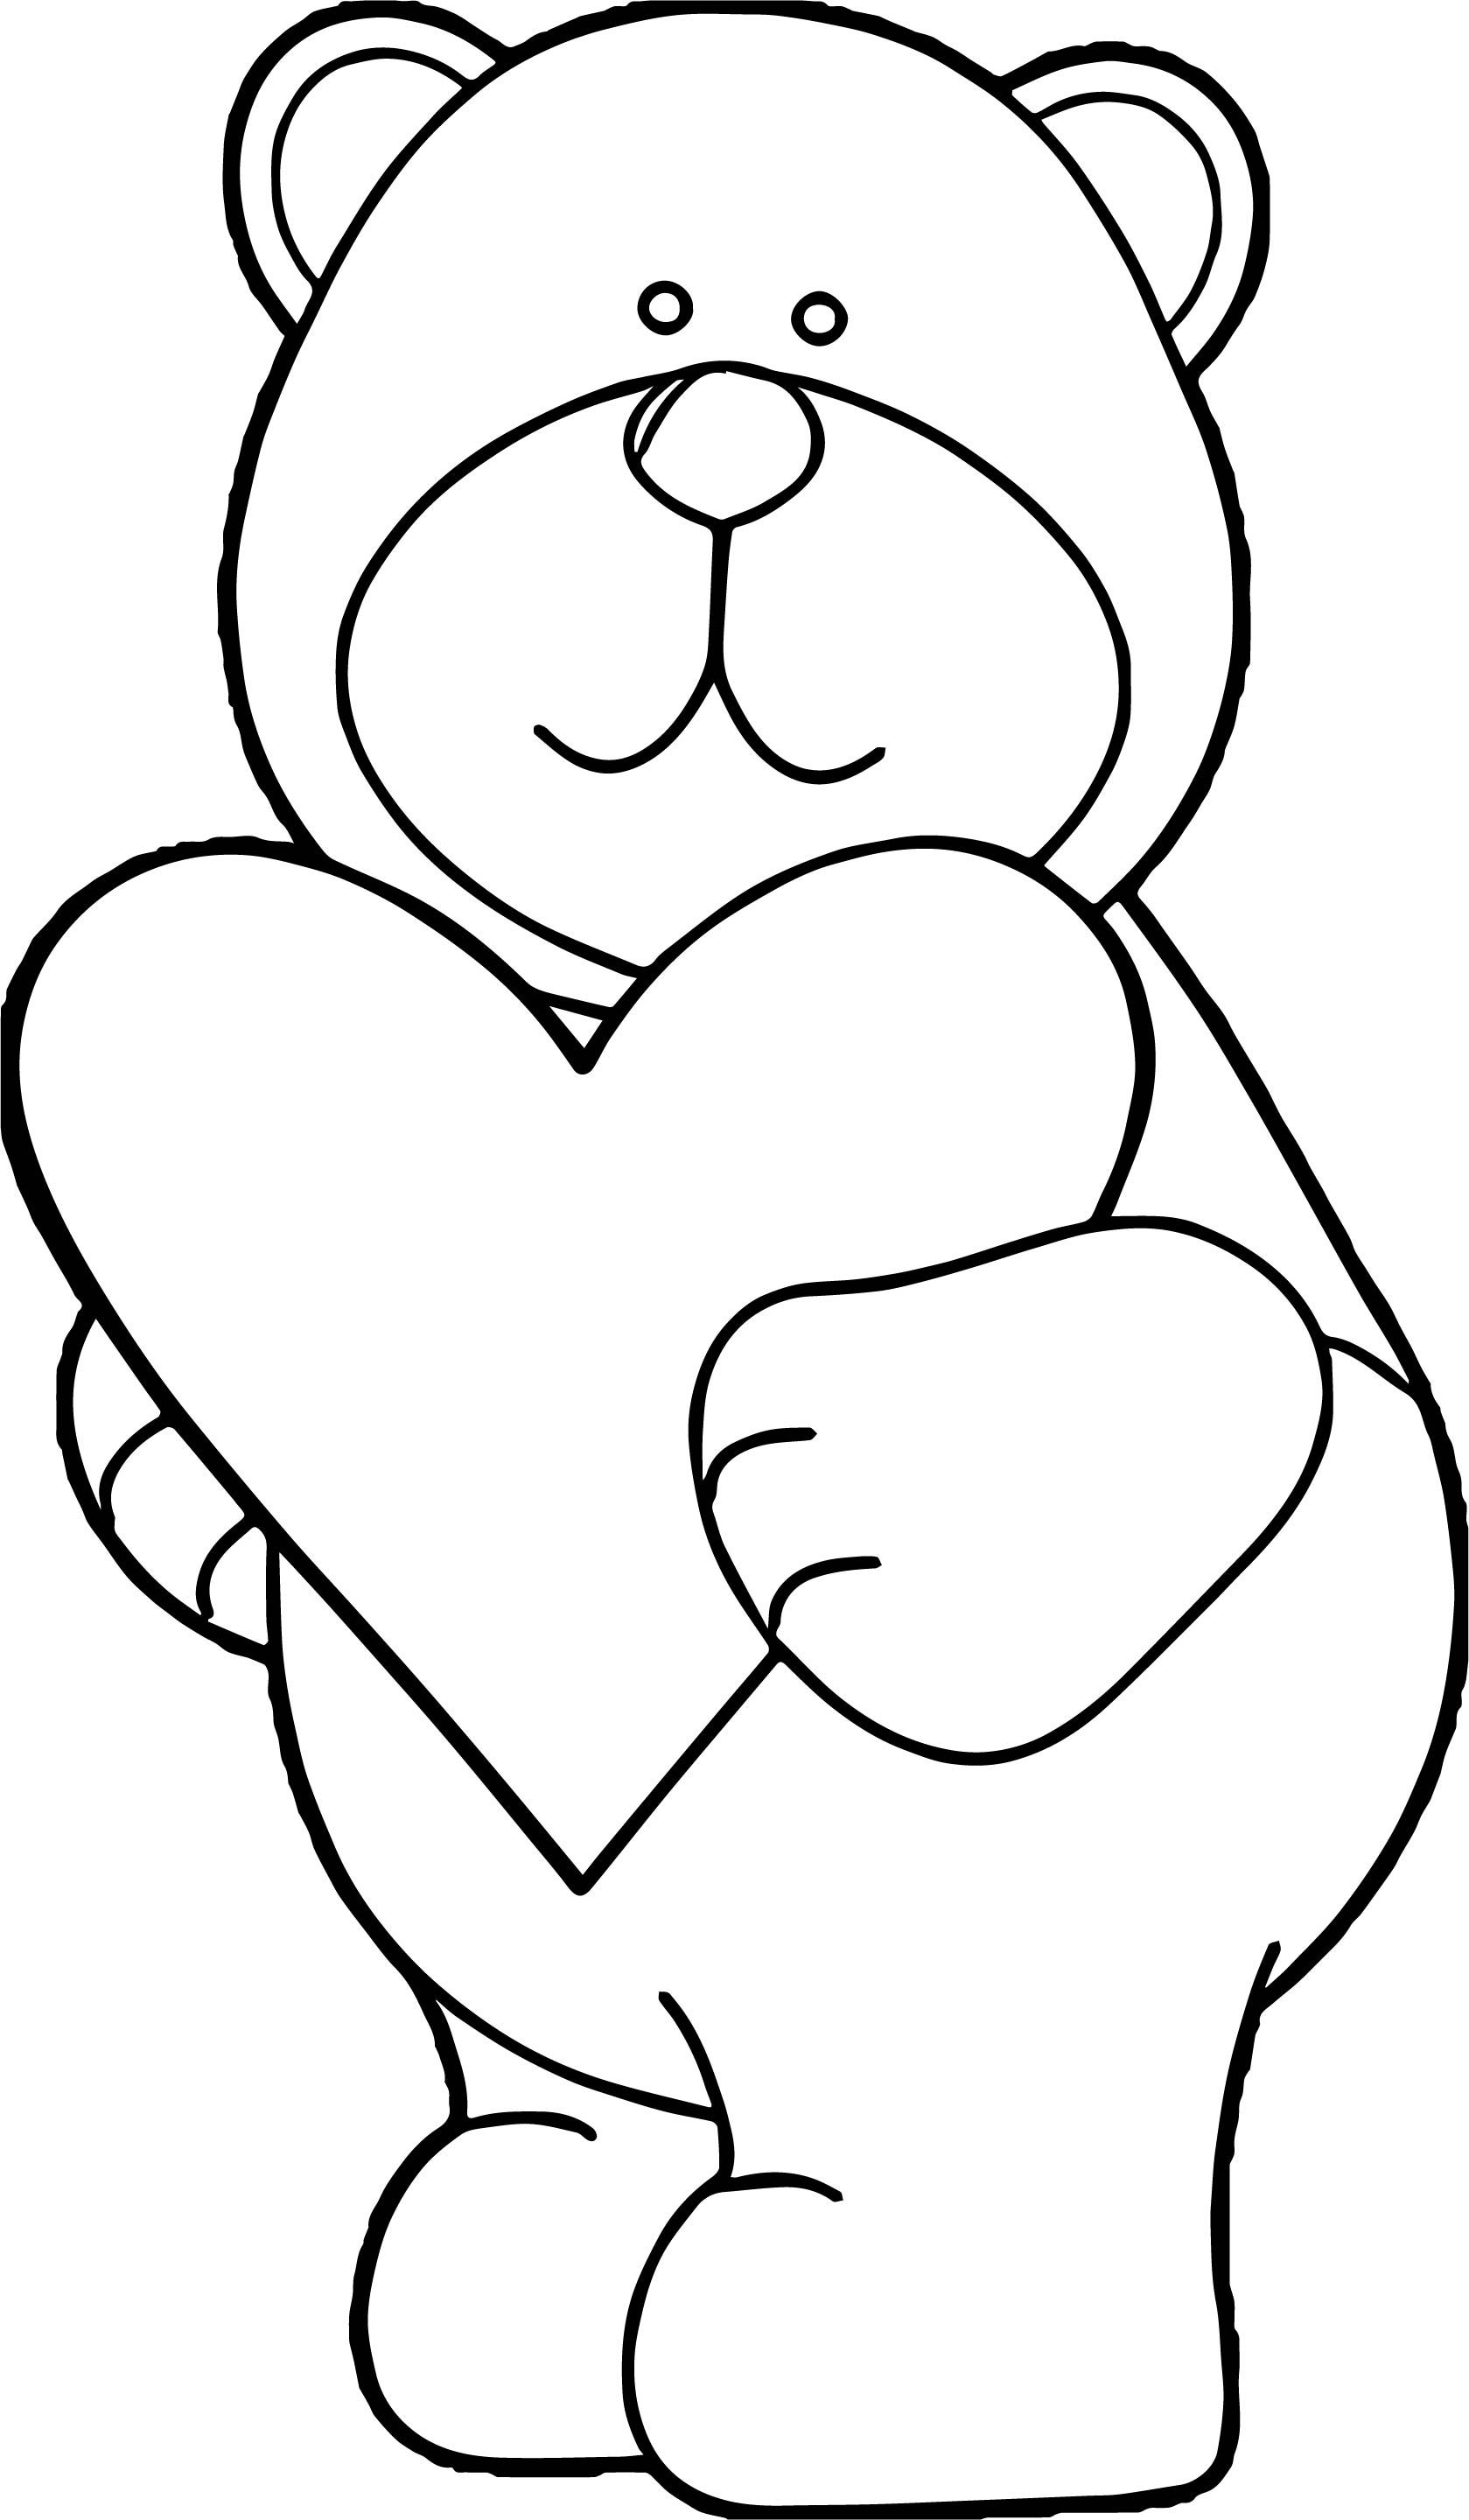 Awesome Bear Heart Coloring Page Heart Coloring Pages